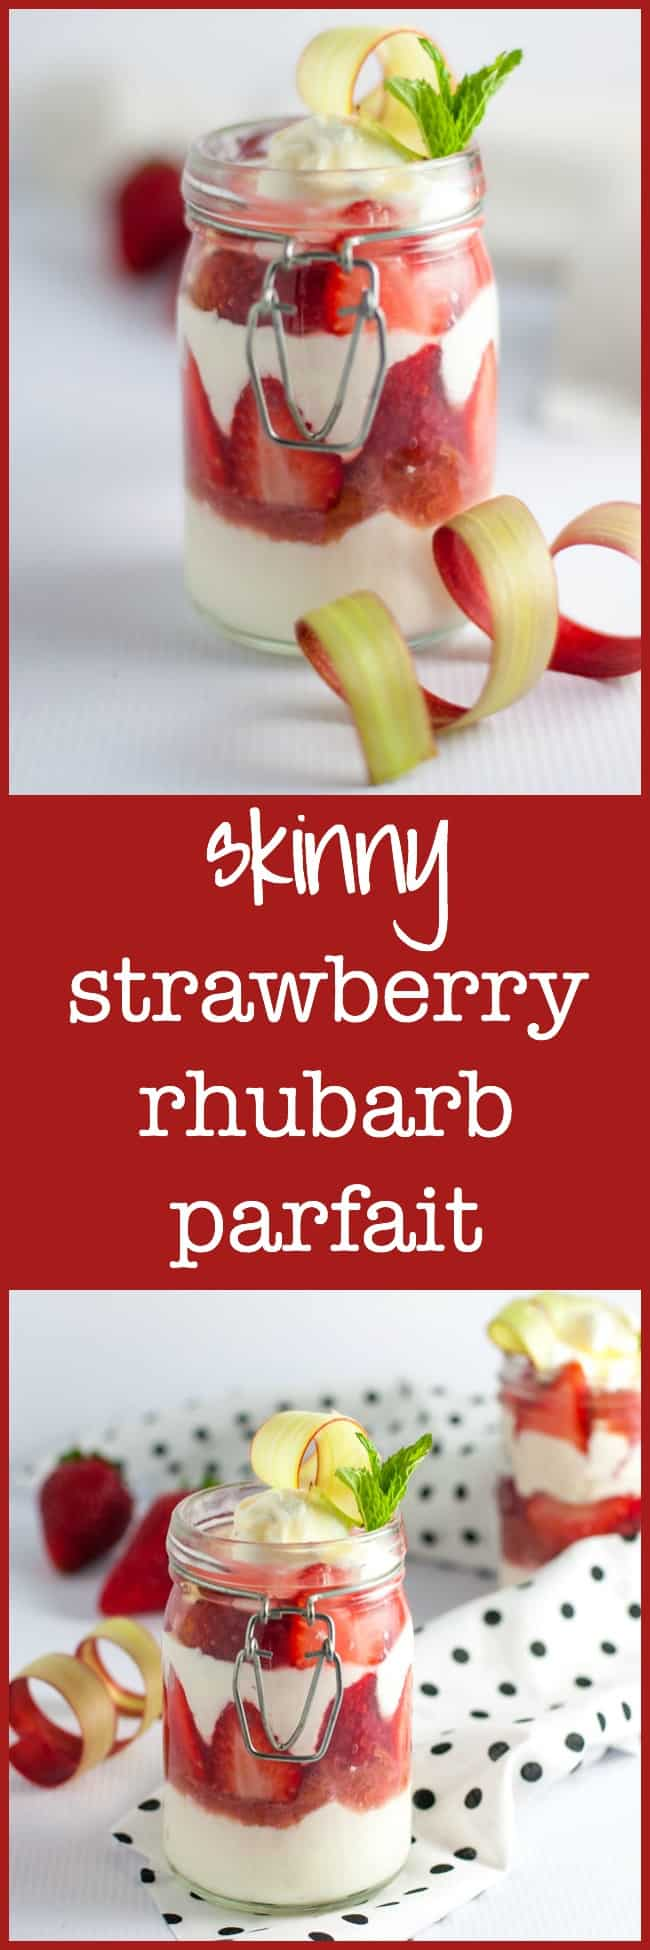 Skinny Strawberry Rhubarb Parfait. Sweet enough for dessert, healthy enough for breakfast! Made with your choice of yogurt, rhubarb compote, and fresh strawberries. No refined sugar! |www.flavourandsavour.com